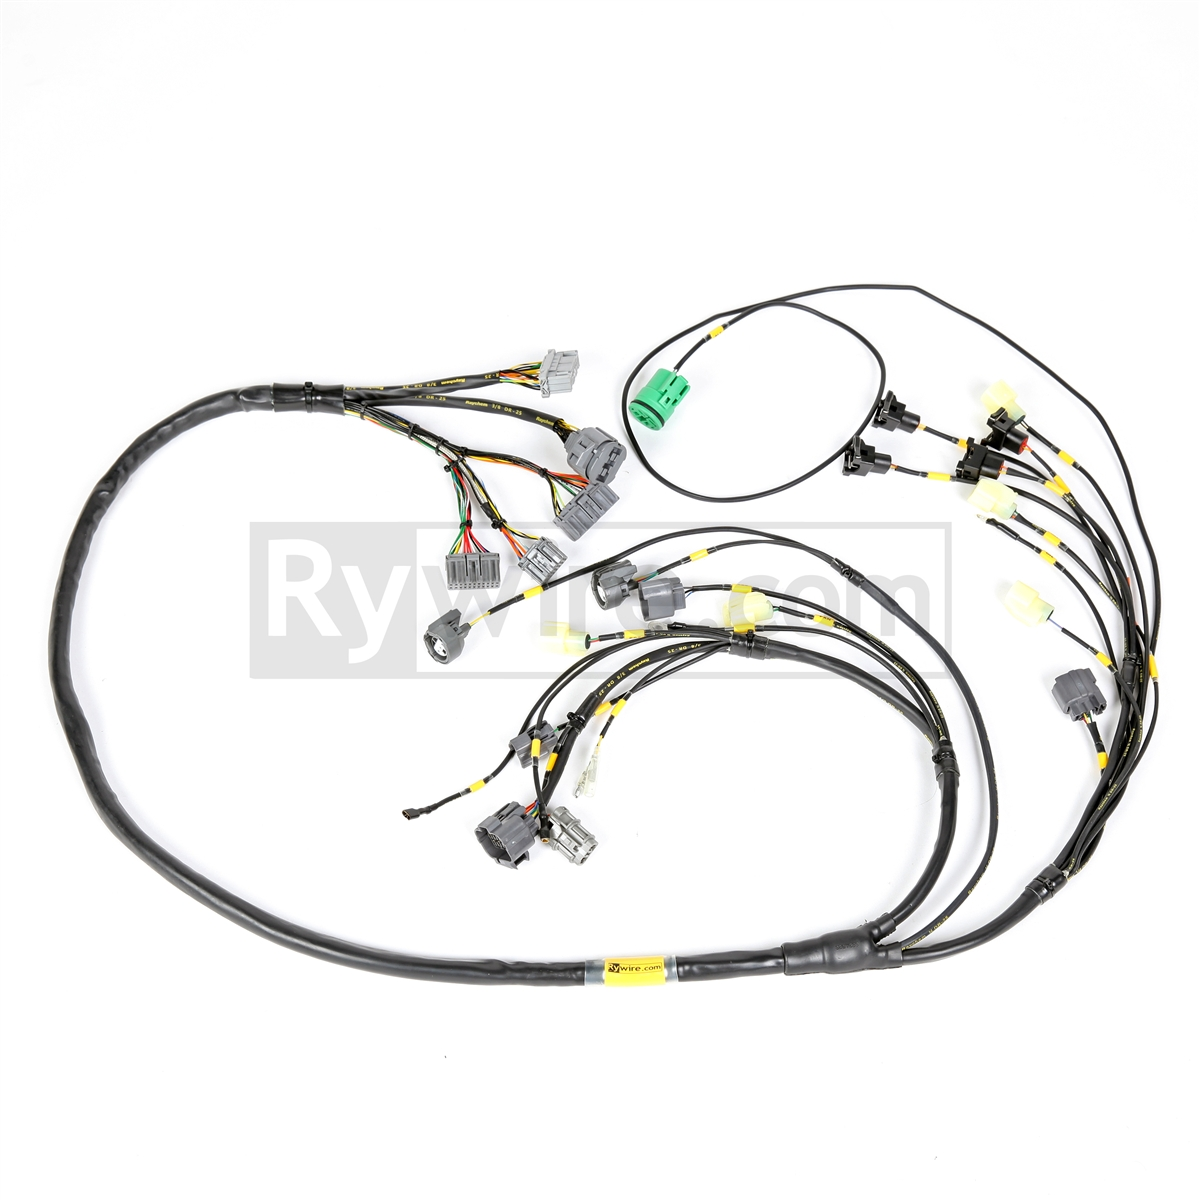 H1 Milspec 2?1402582650 rywire com mil spec f series (f20b) & h series (h22) harness Wiring Harness Diagram at n-0.co